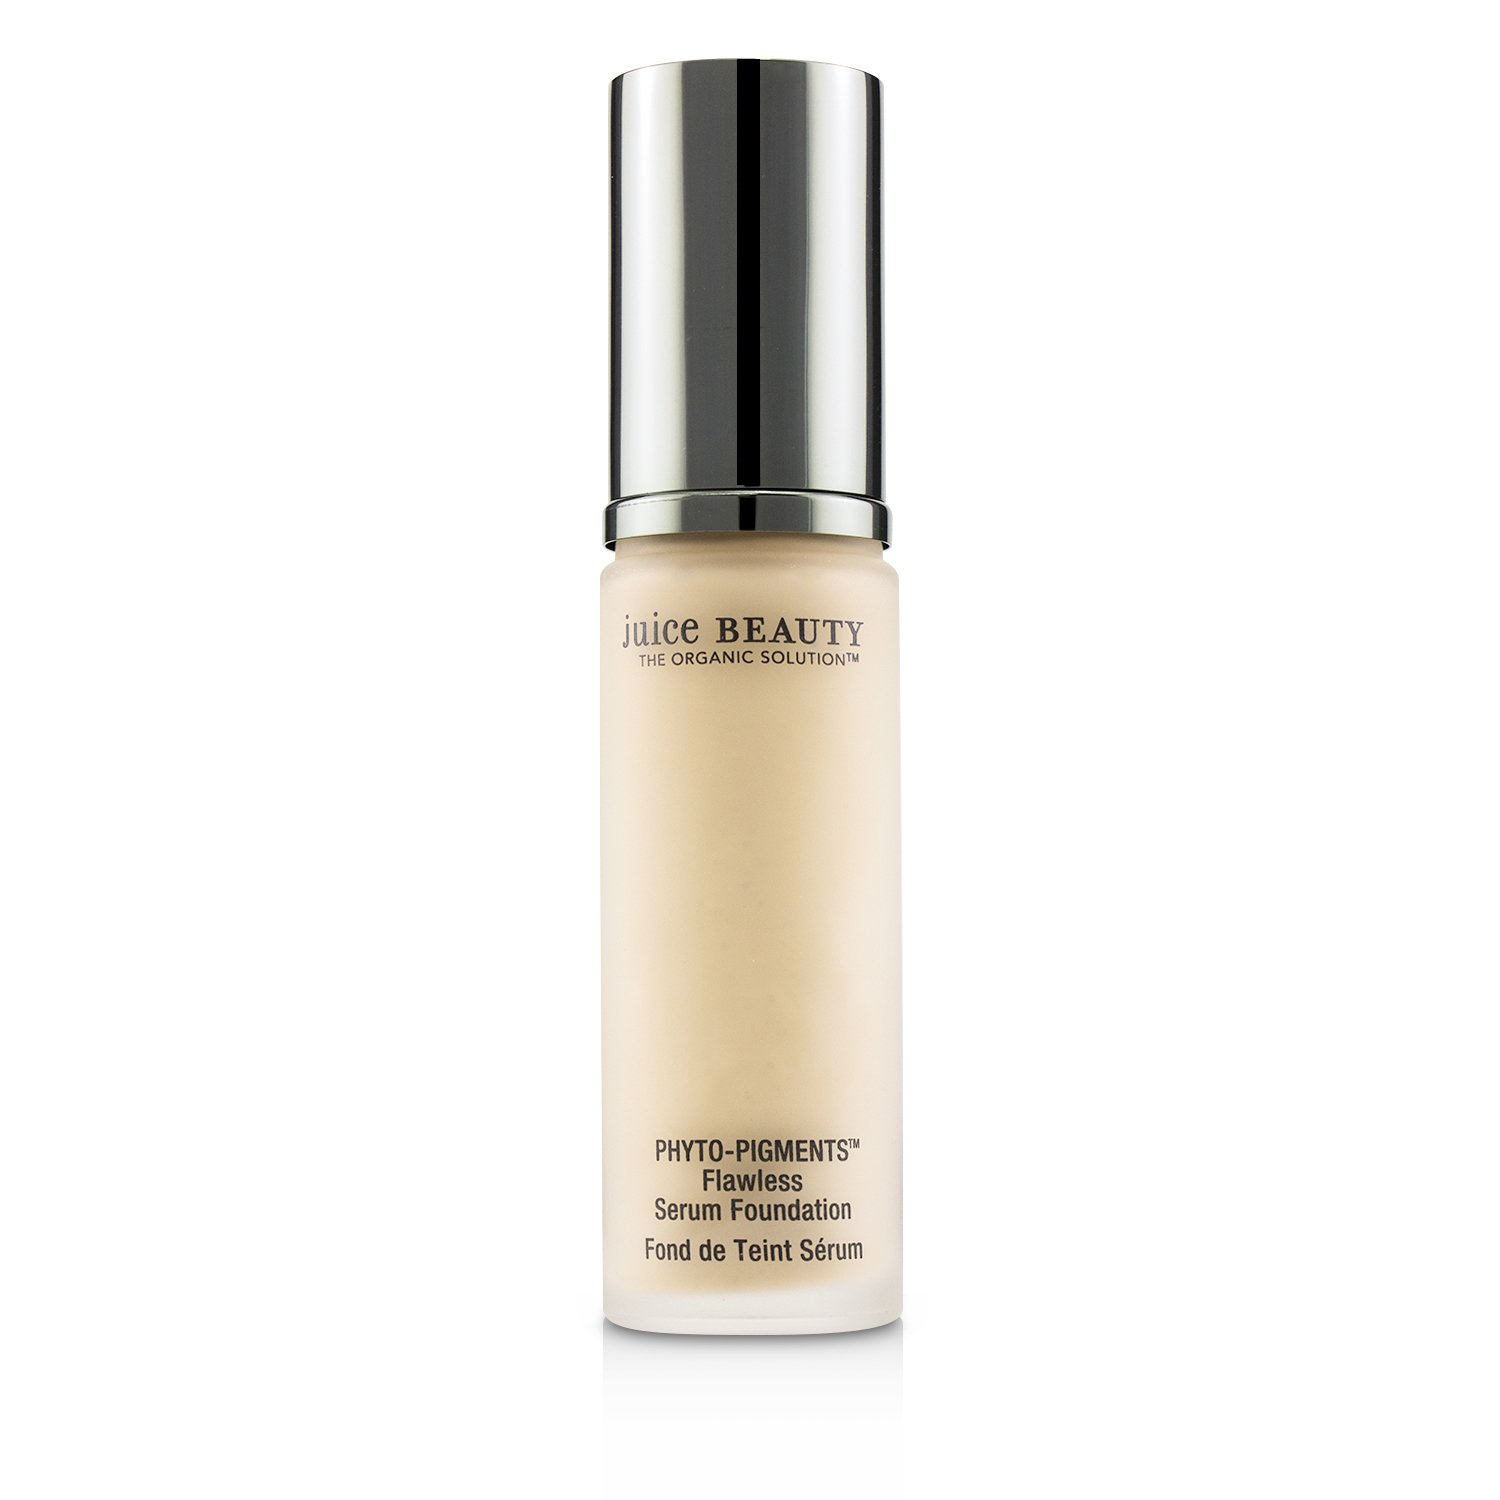 Juice-Beauty-Phyto-Pigments-Flawless-Serum-Foundation thumbnail 12